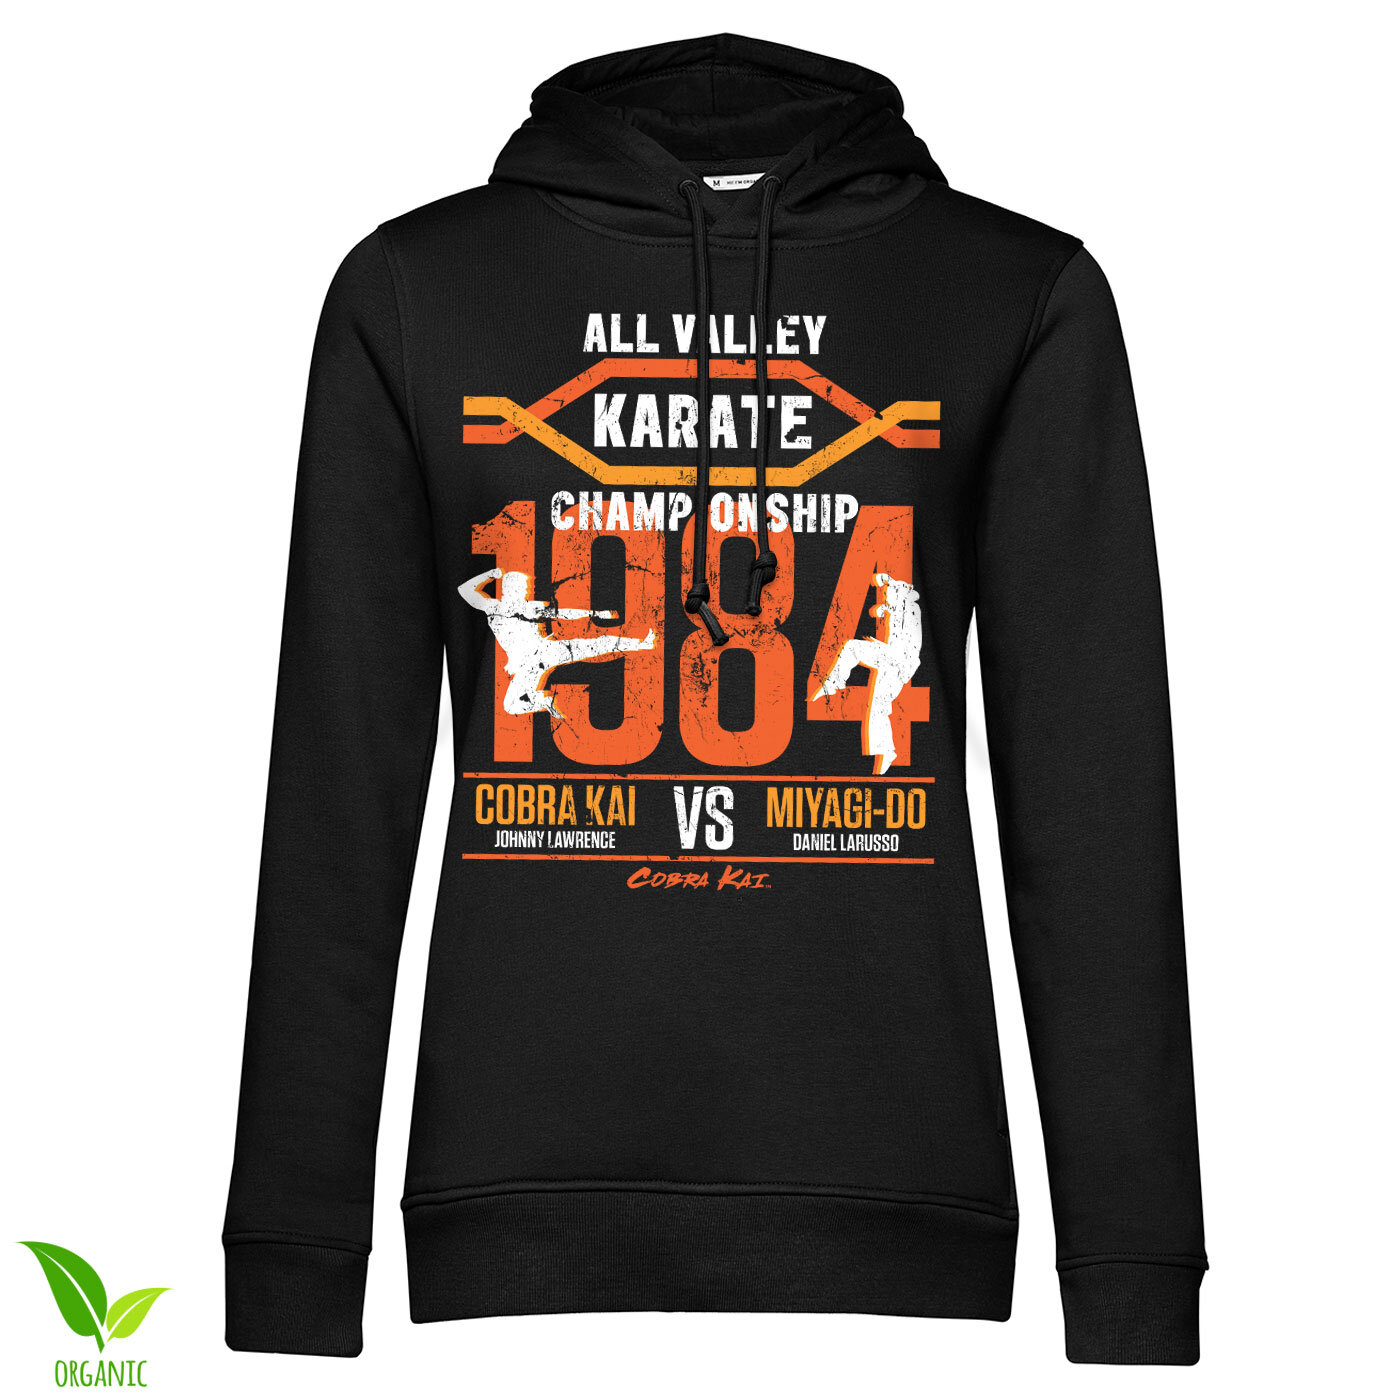 All Valley Karate Championship Girly Hoodie